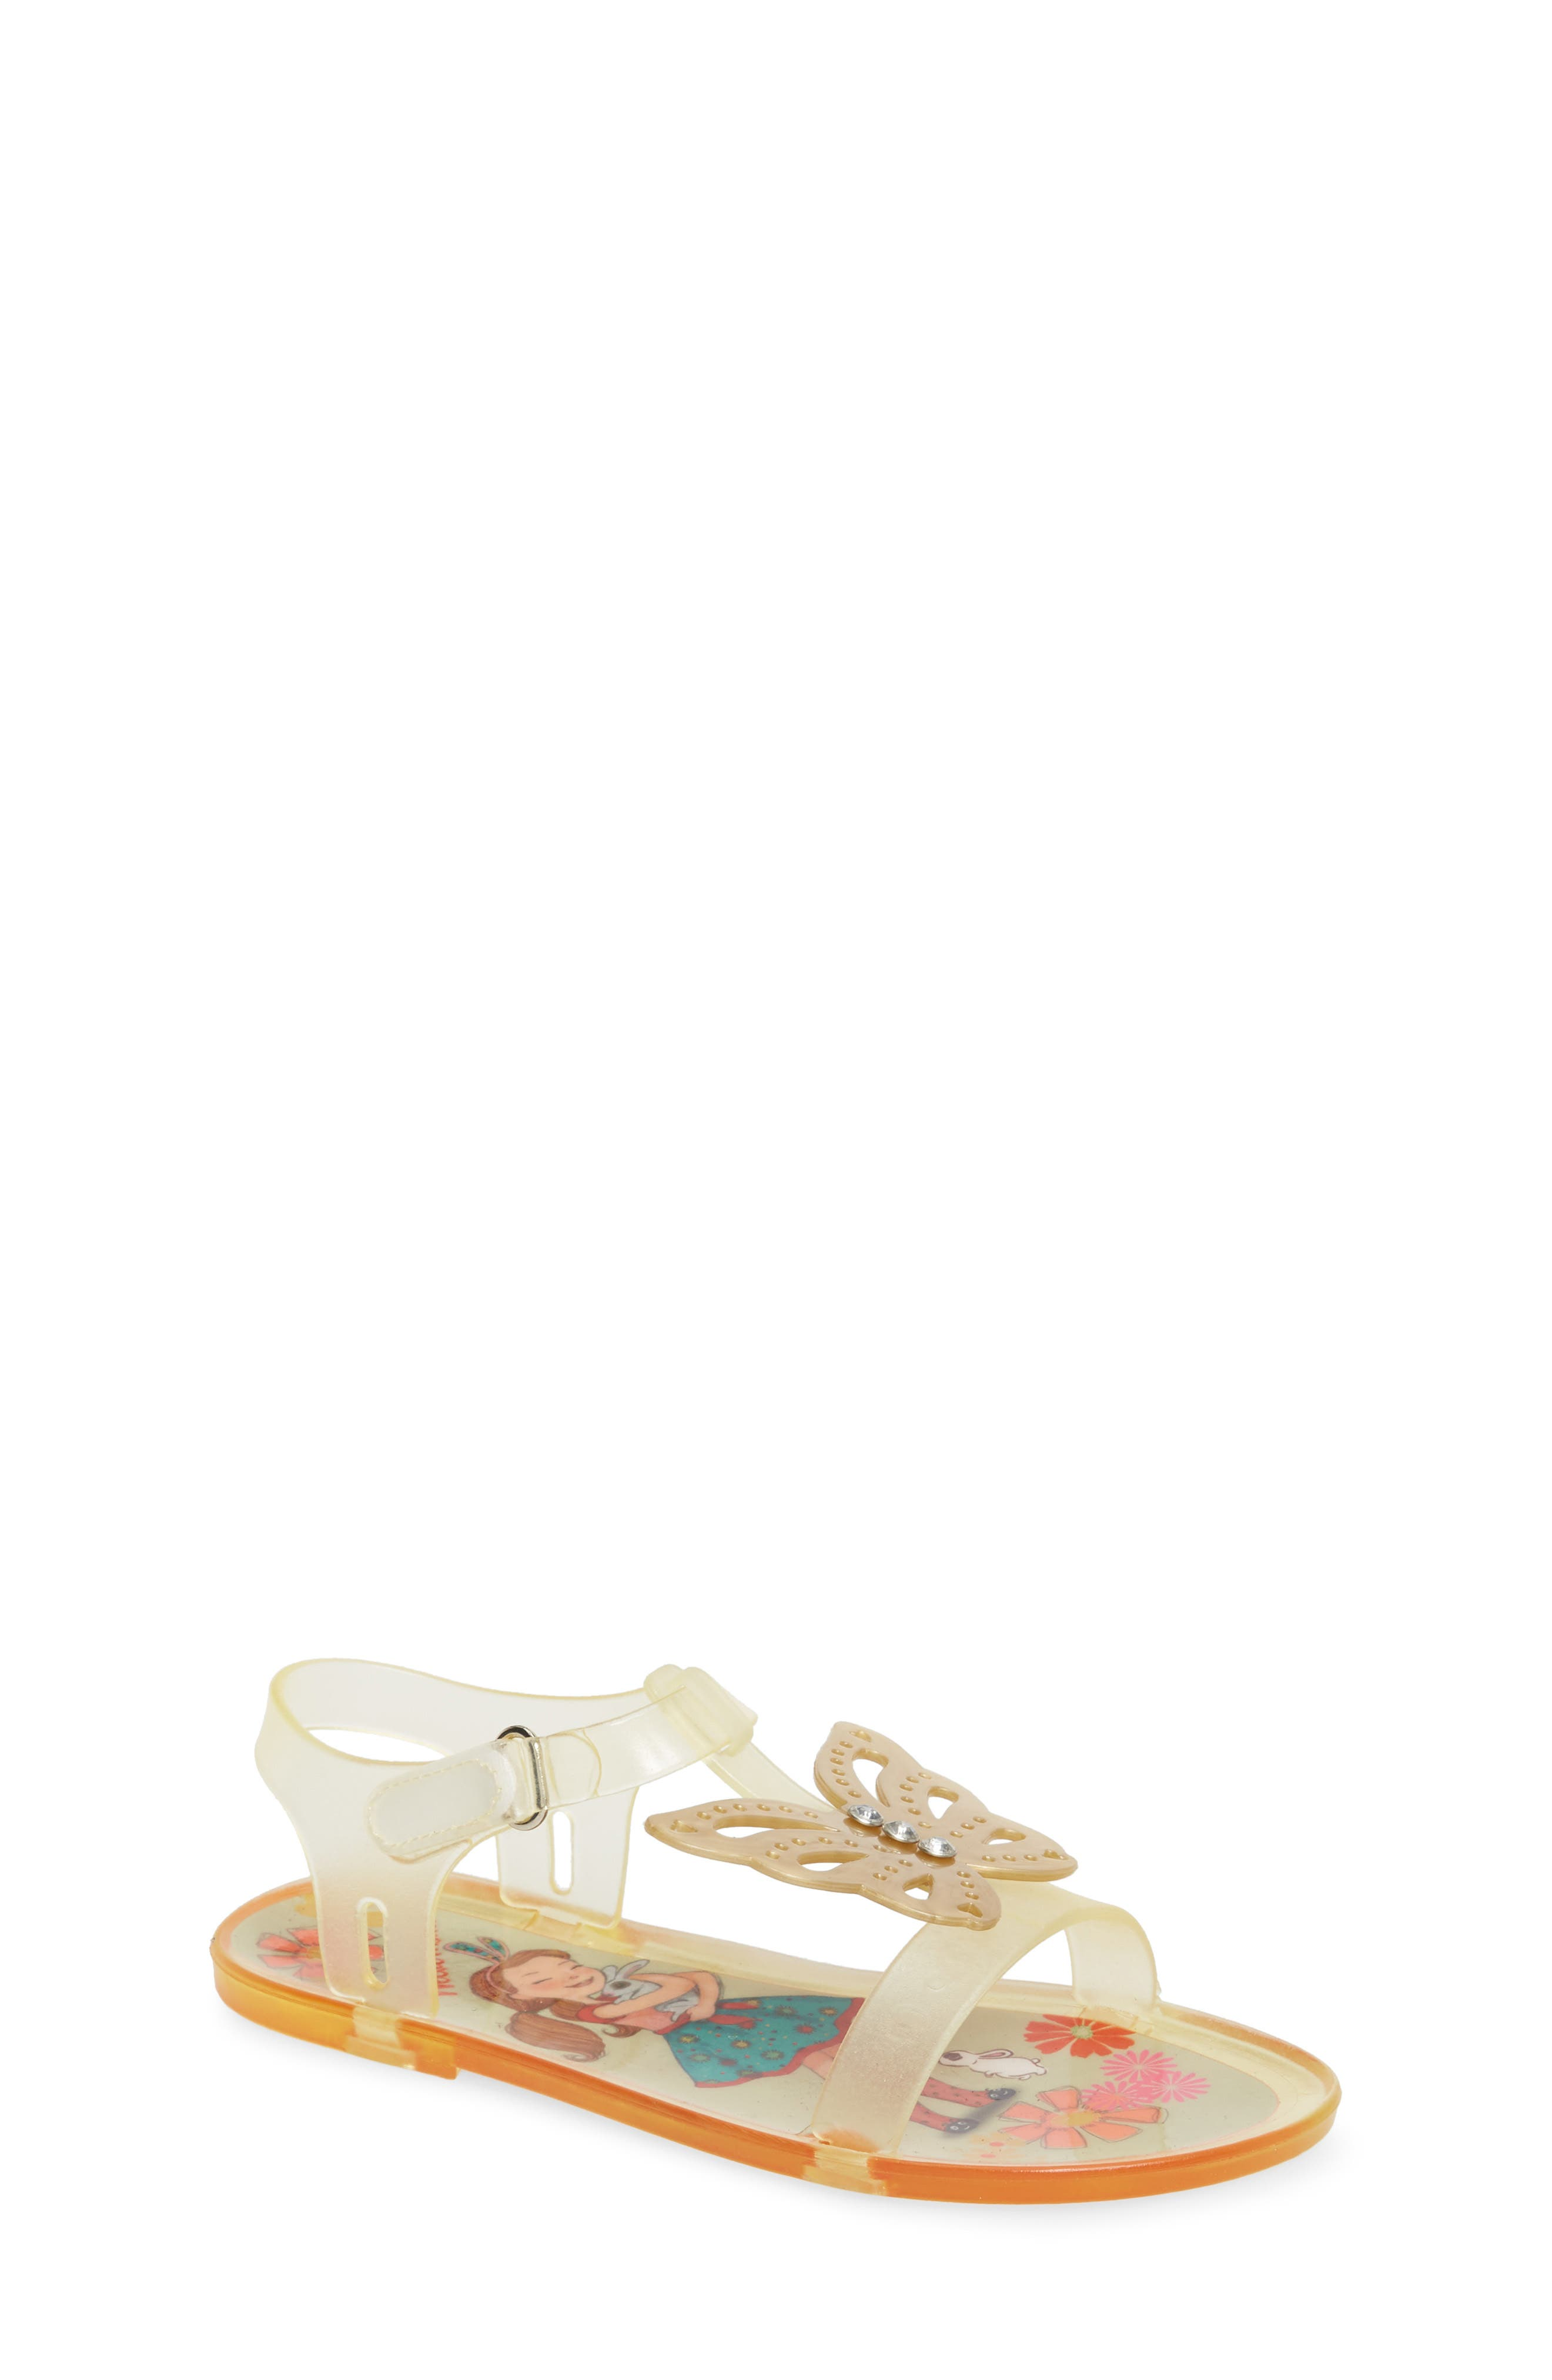 Willa Butterfly Jelly Sandal,                             Main thumbnail 1, color,                             Gold